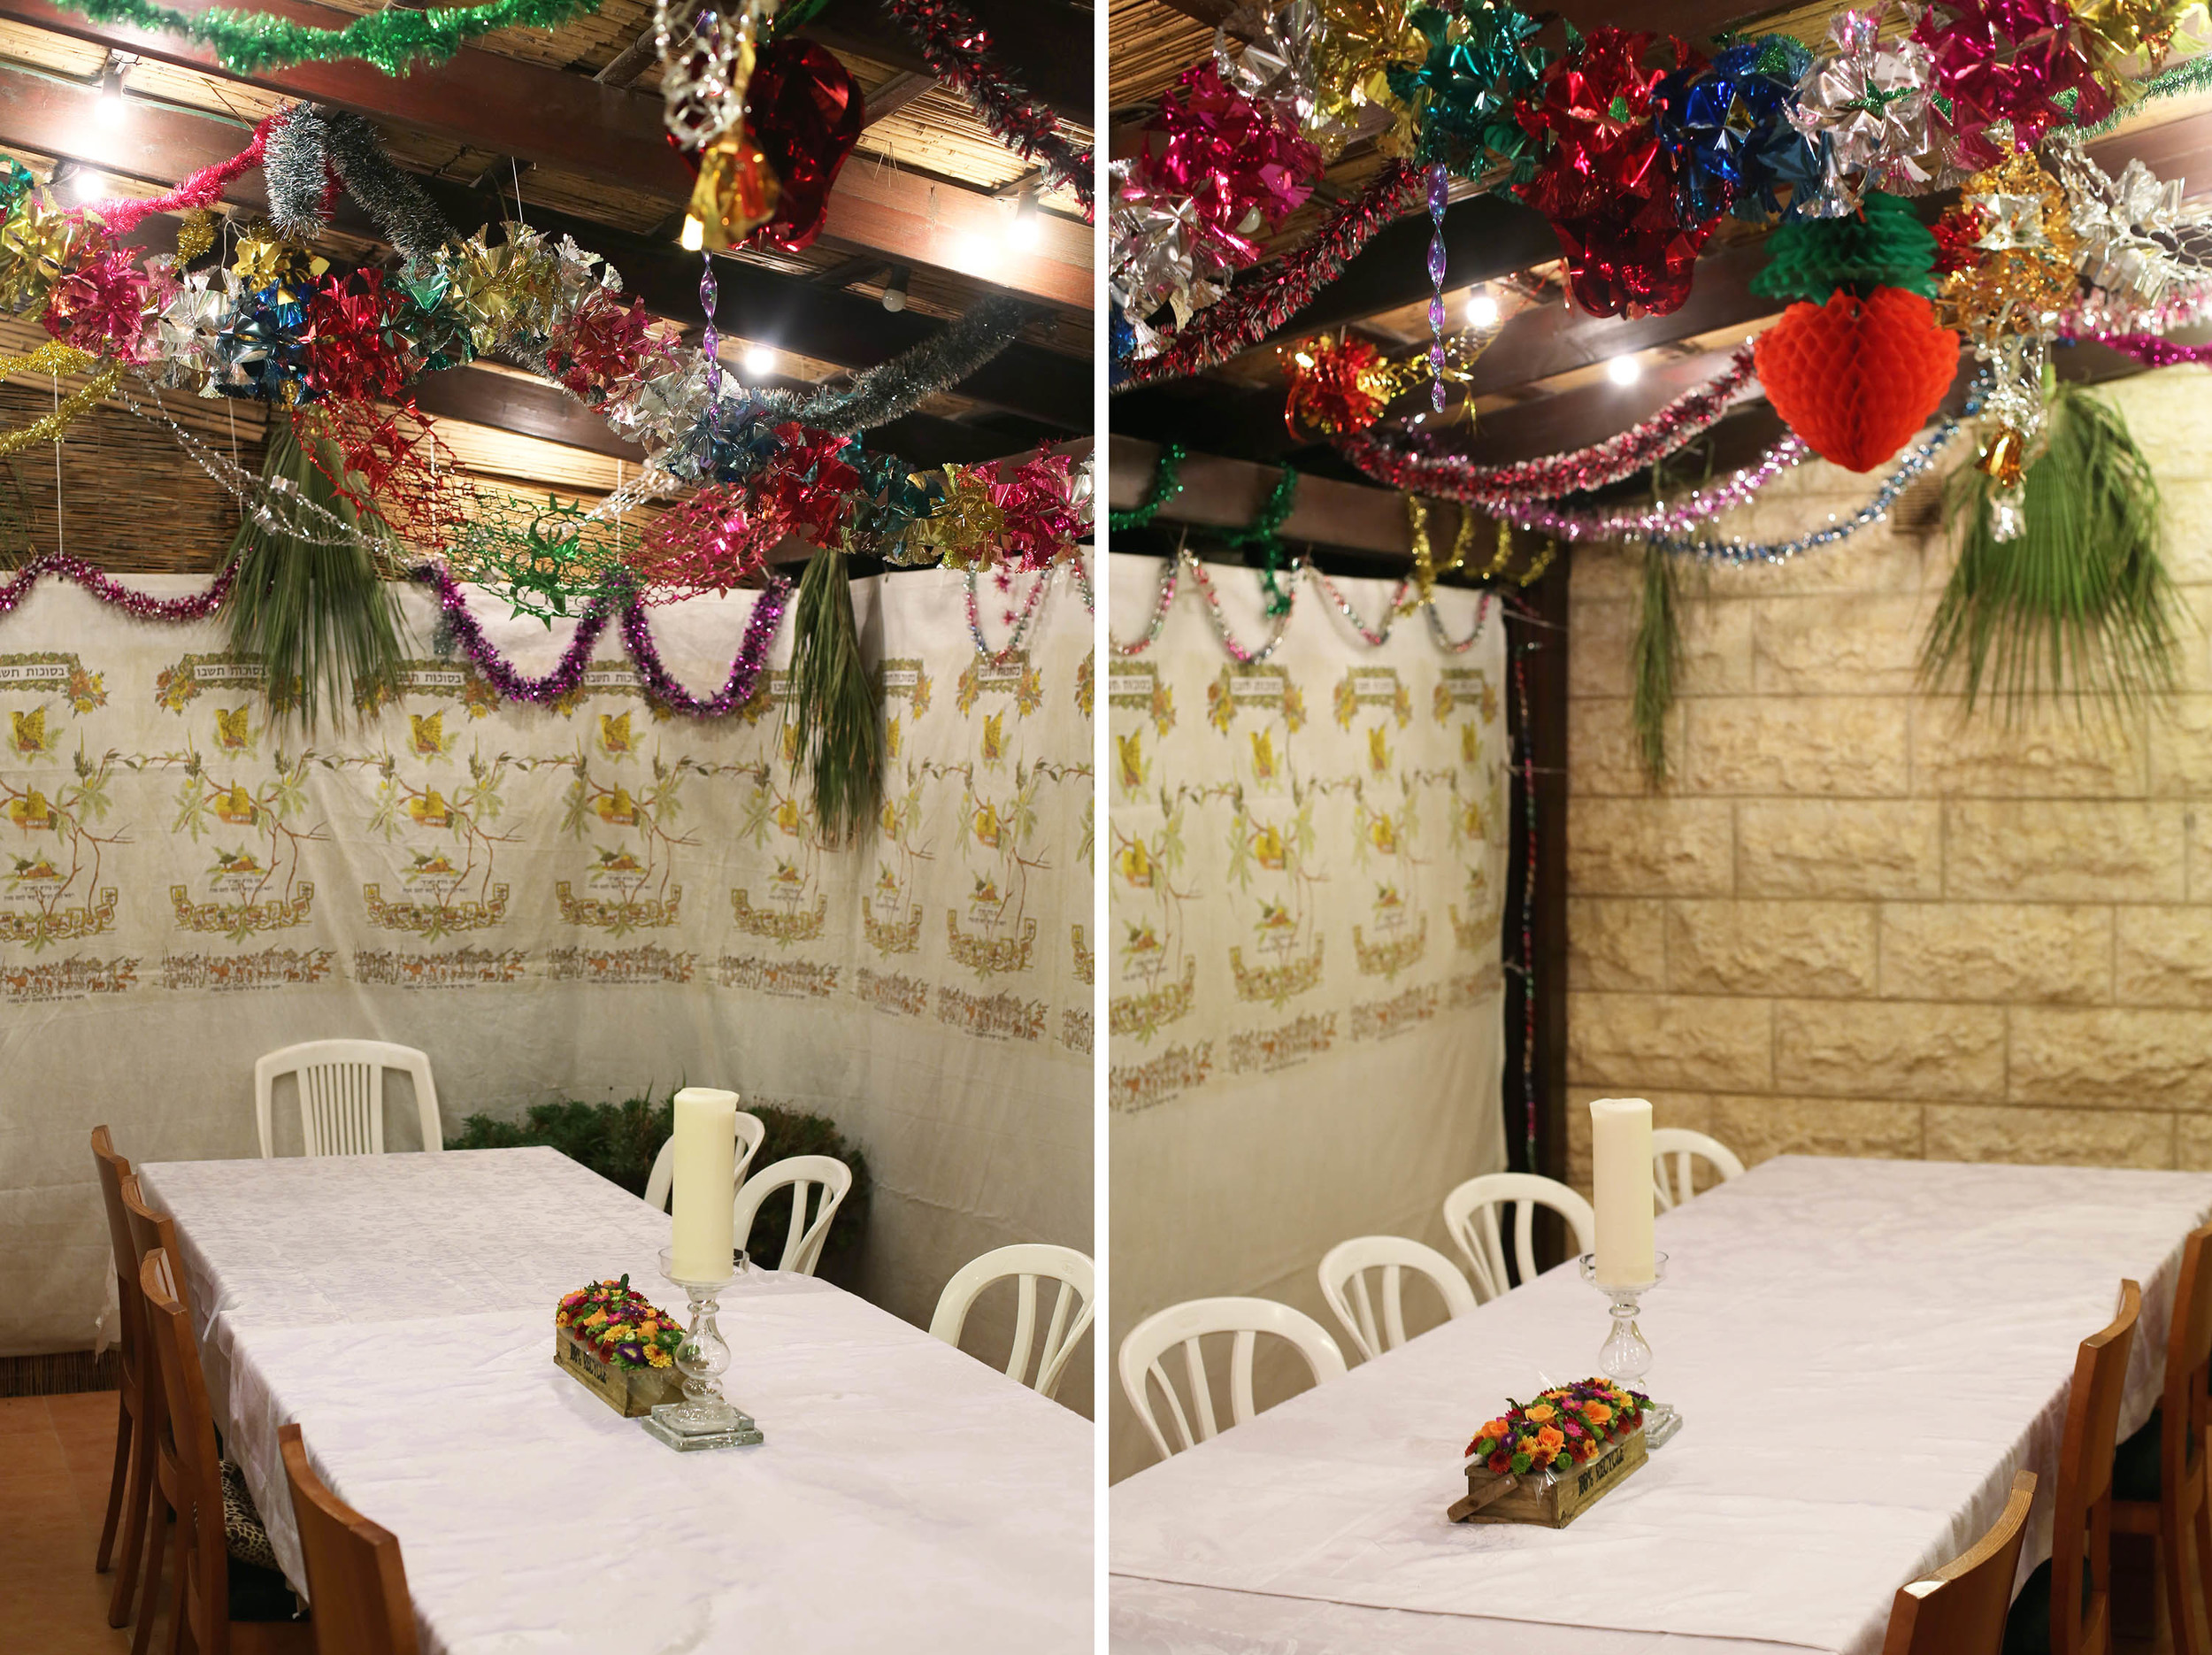 The Sukkah is decorated and the table is ready to be set.